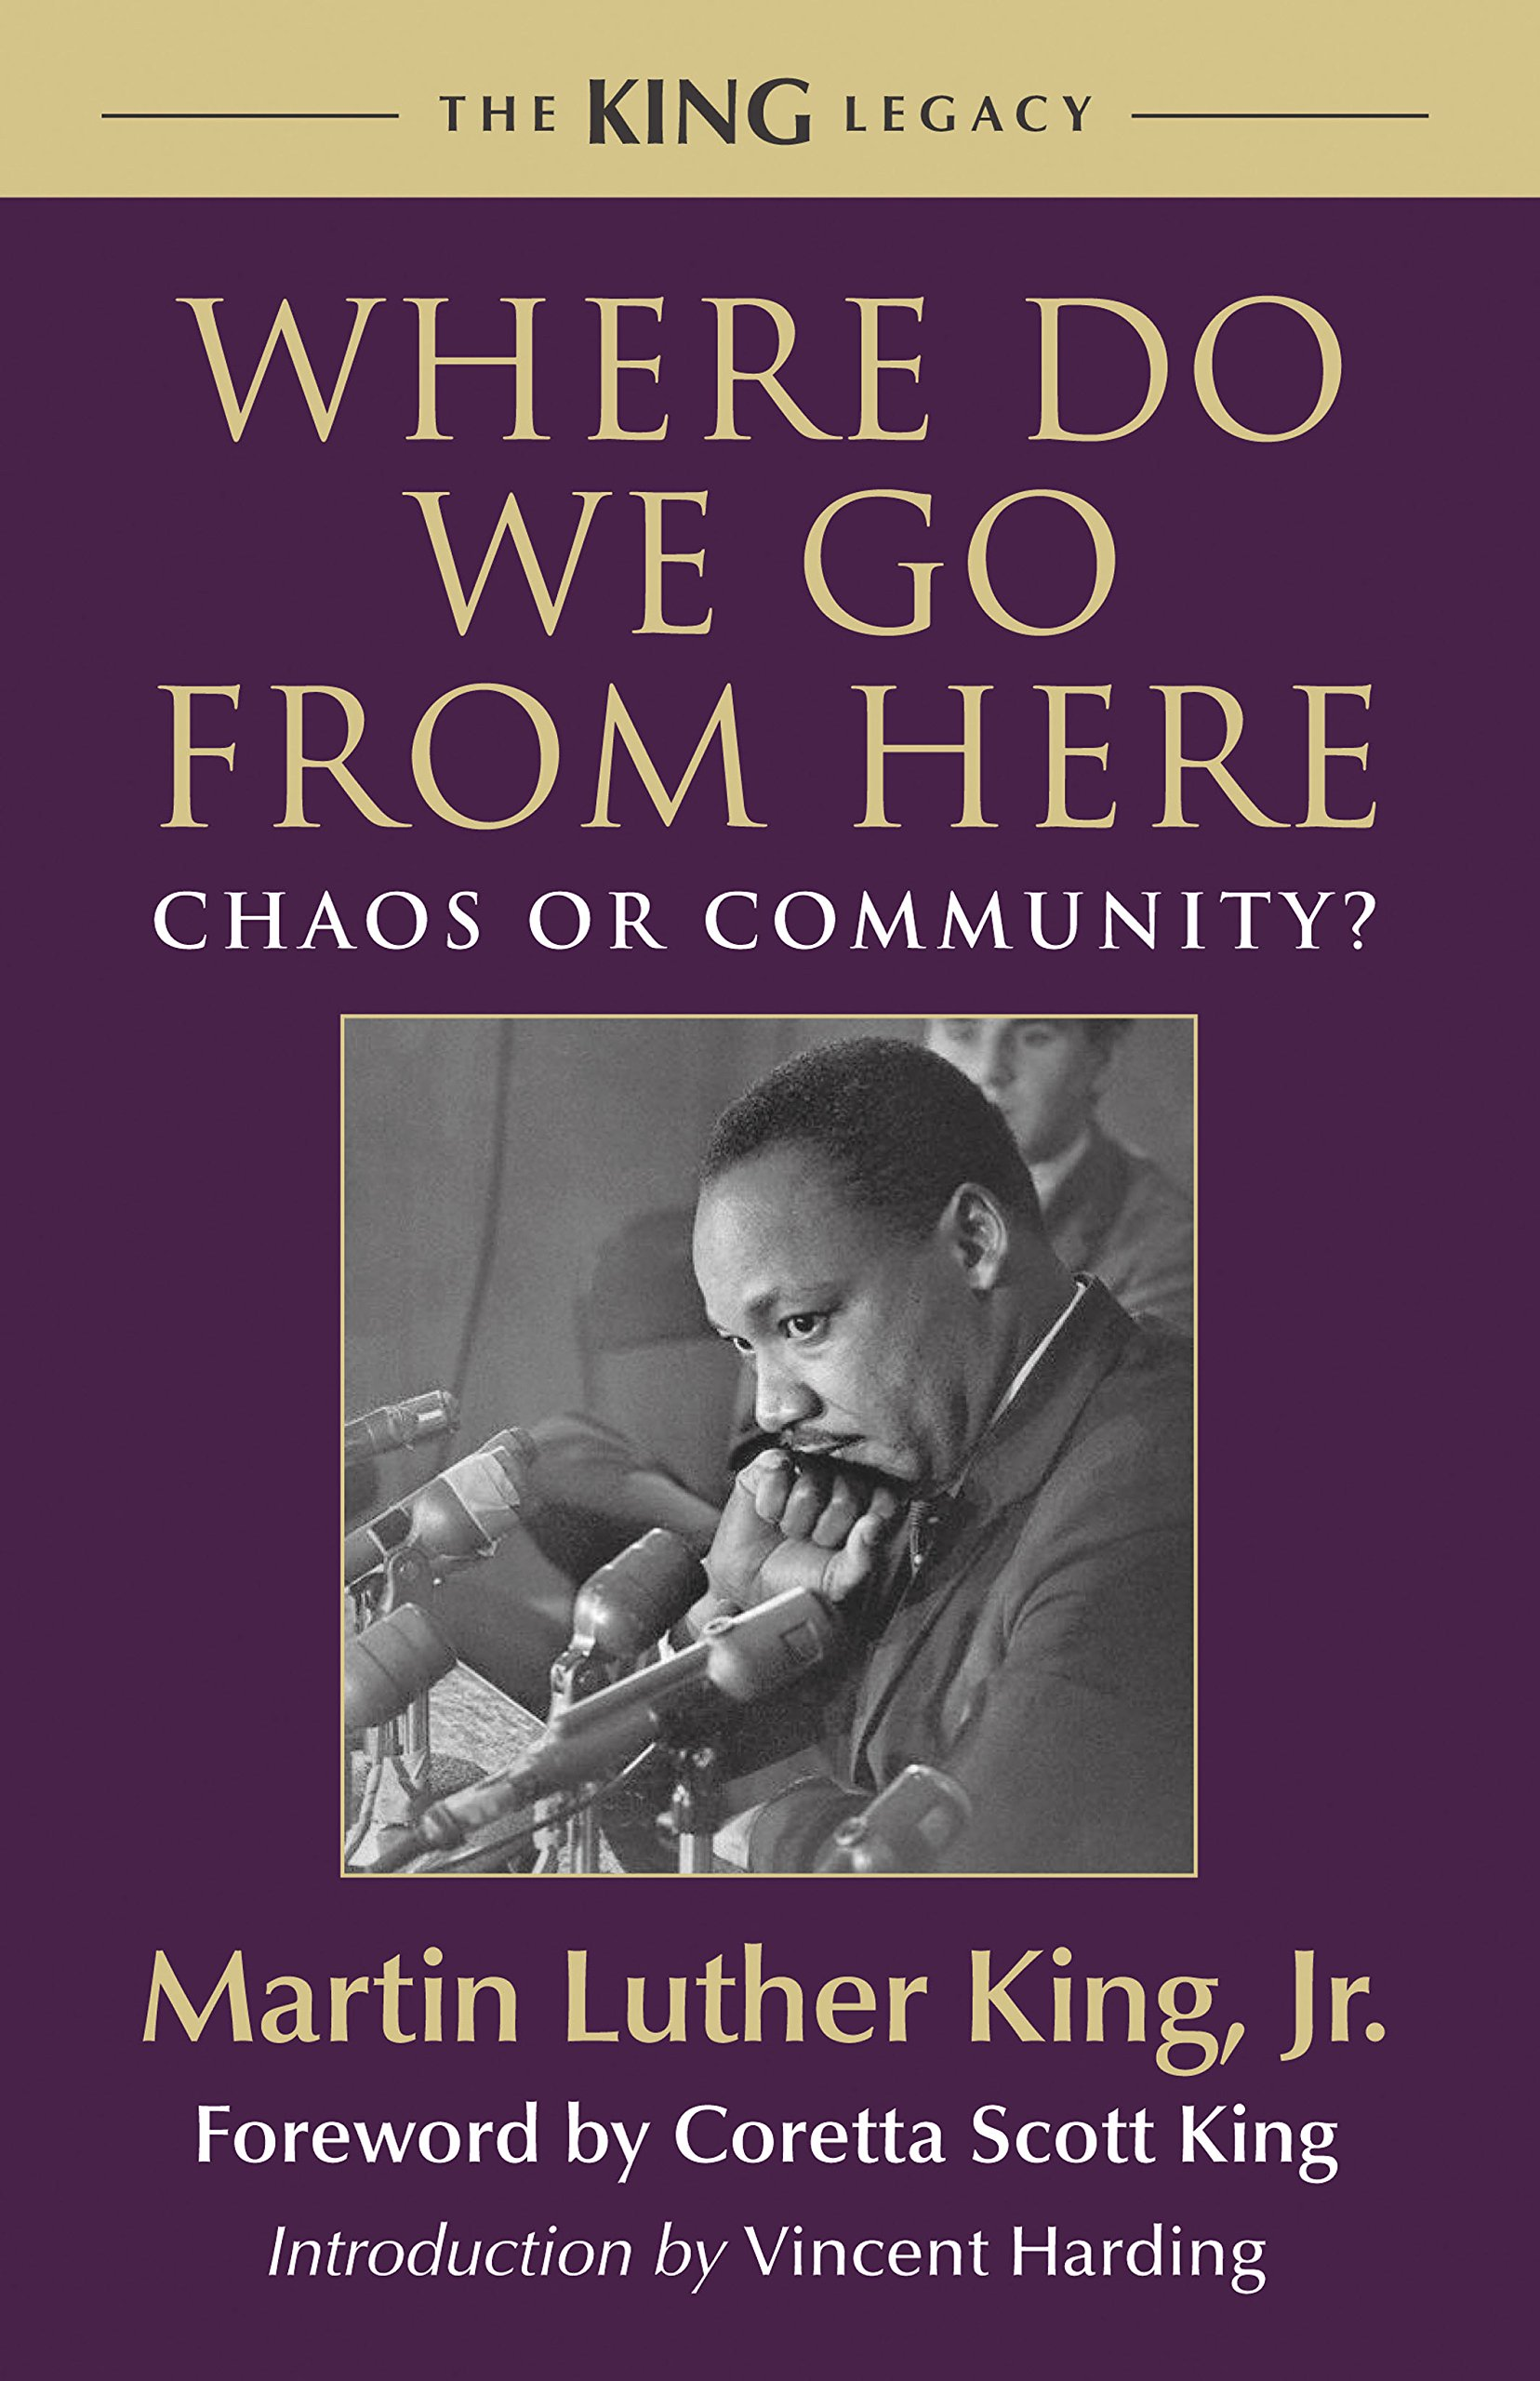 Image result for where do we go from here martin luther king